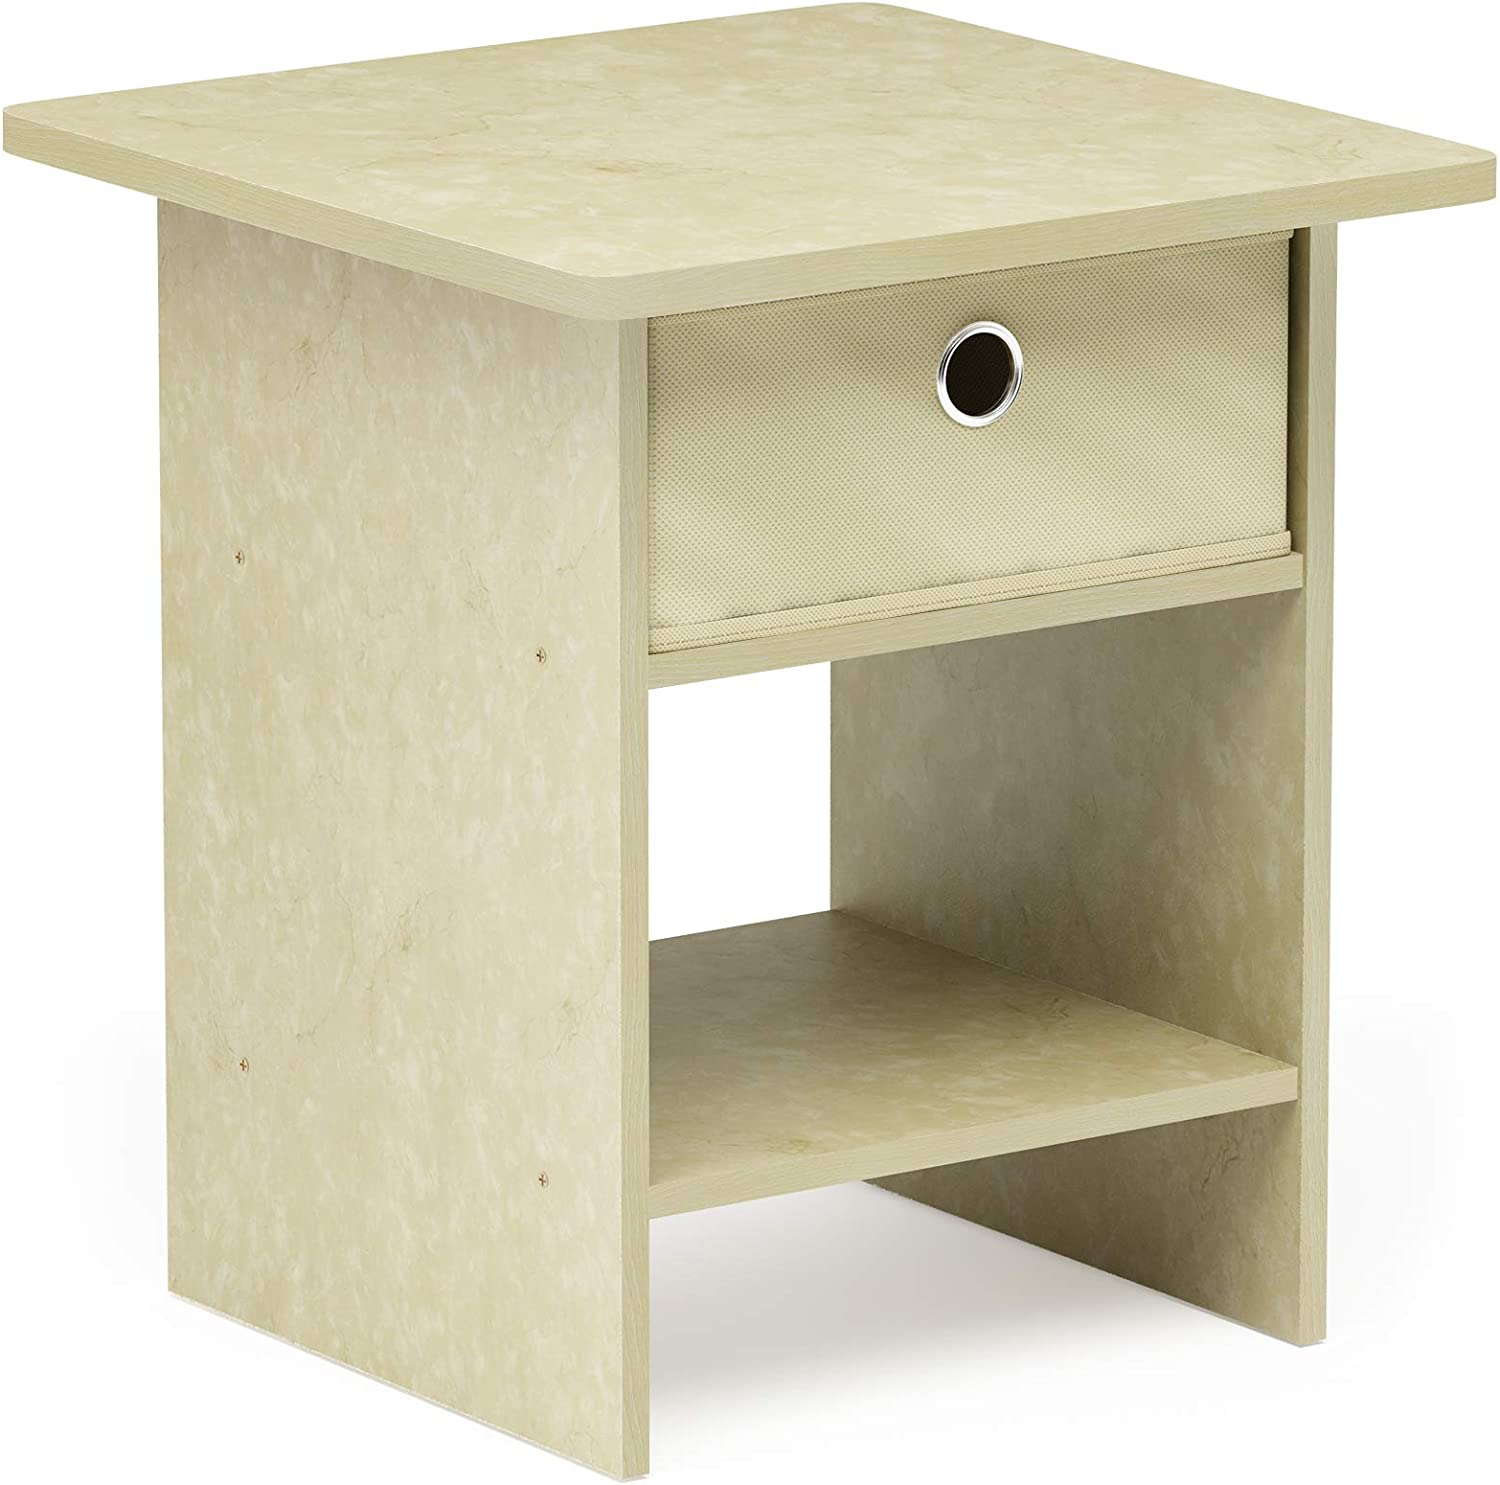 FURINNO Dario End Table/Night Stand Storage Shelf, 1-Pack, Cream Faux Marble/Ivory